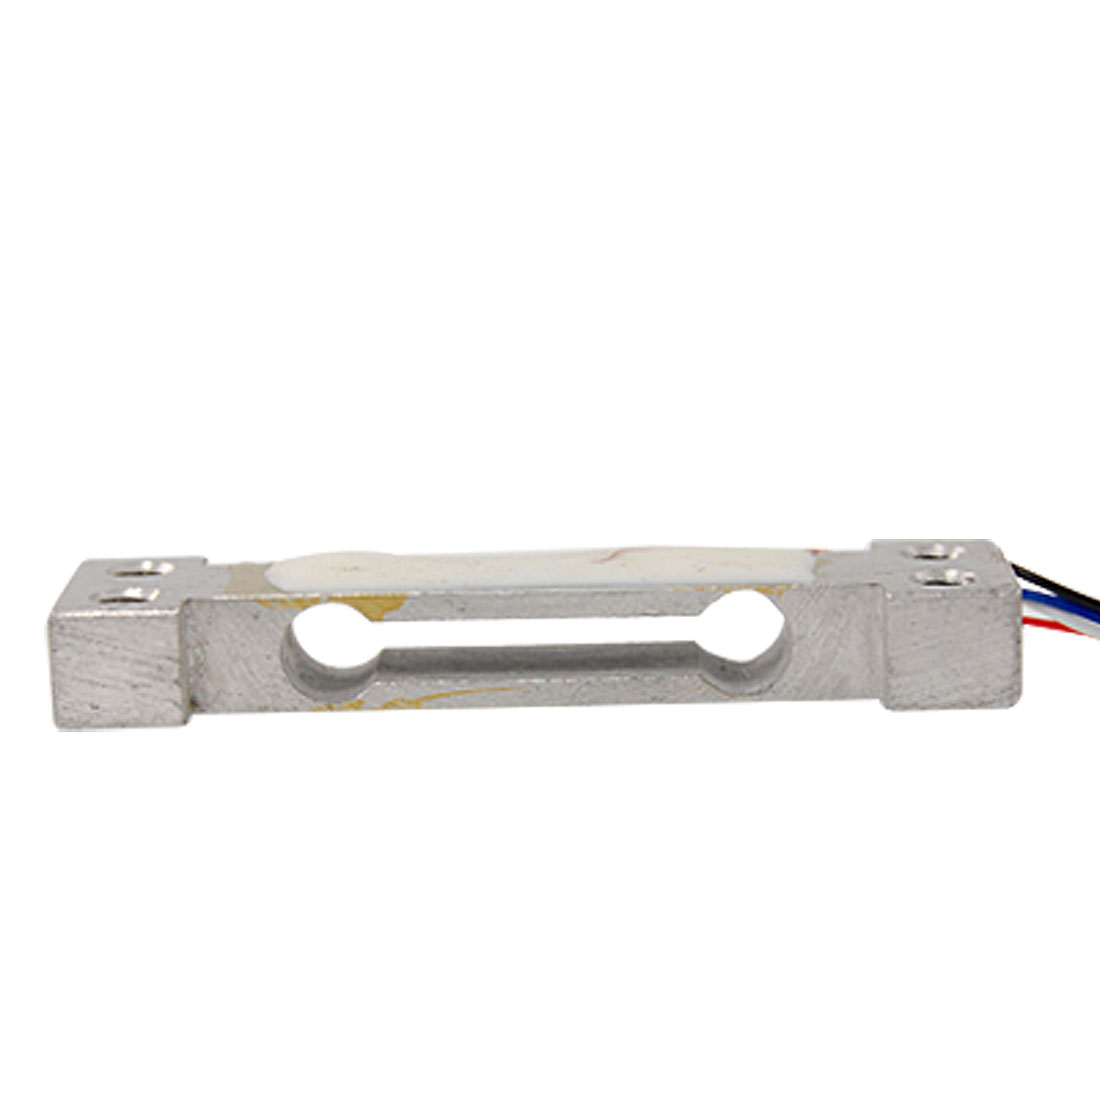 0-300g Weighing Load Cell Sensor for Electronic Balance(China (Mainland))